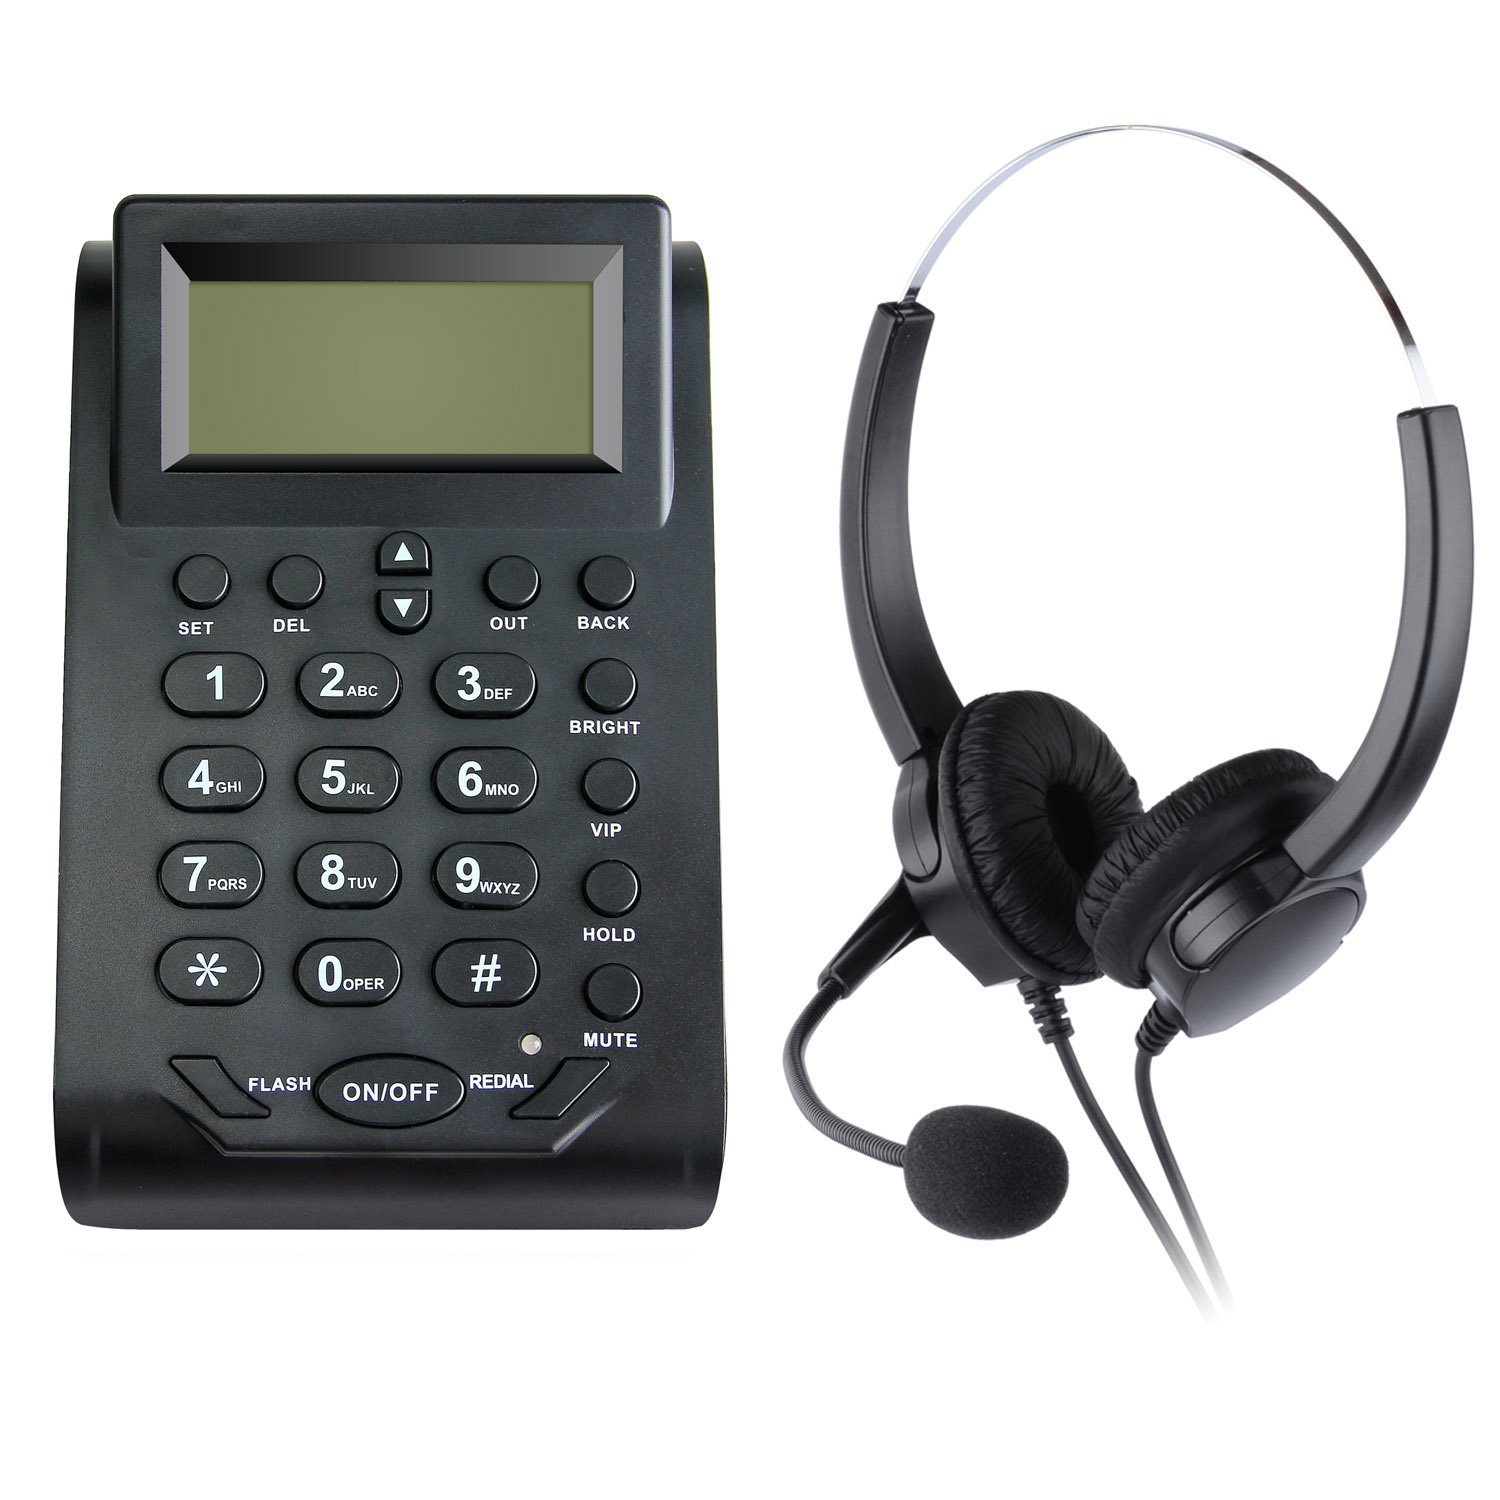 CYecho Call Center Telephone Hands-free Call Center Noise Cancellation Binaural Corded Headset Telephone Desk Phone Headphones Headset w/ PC Recording Function - HT580